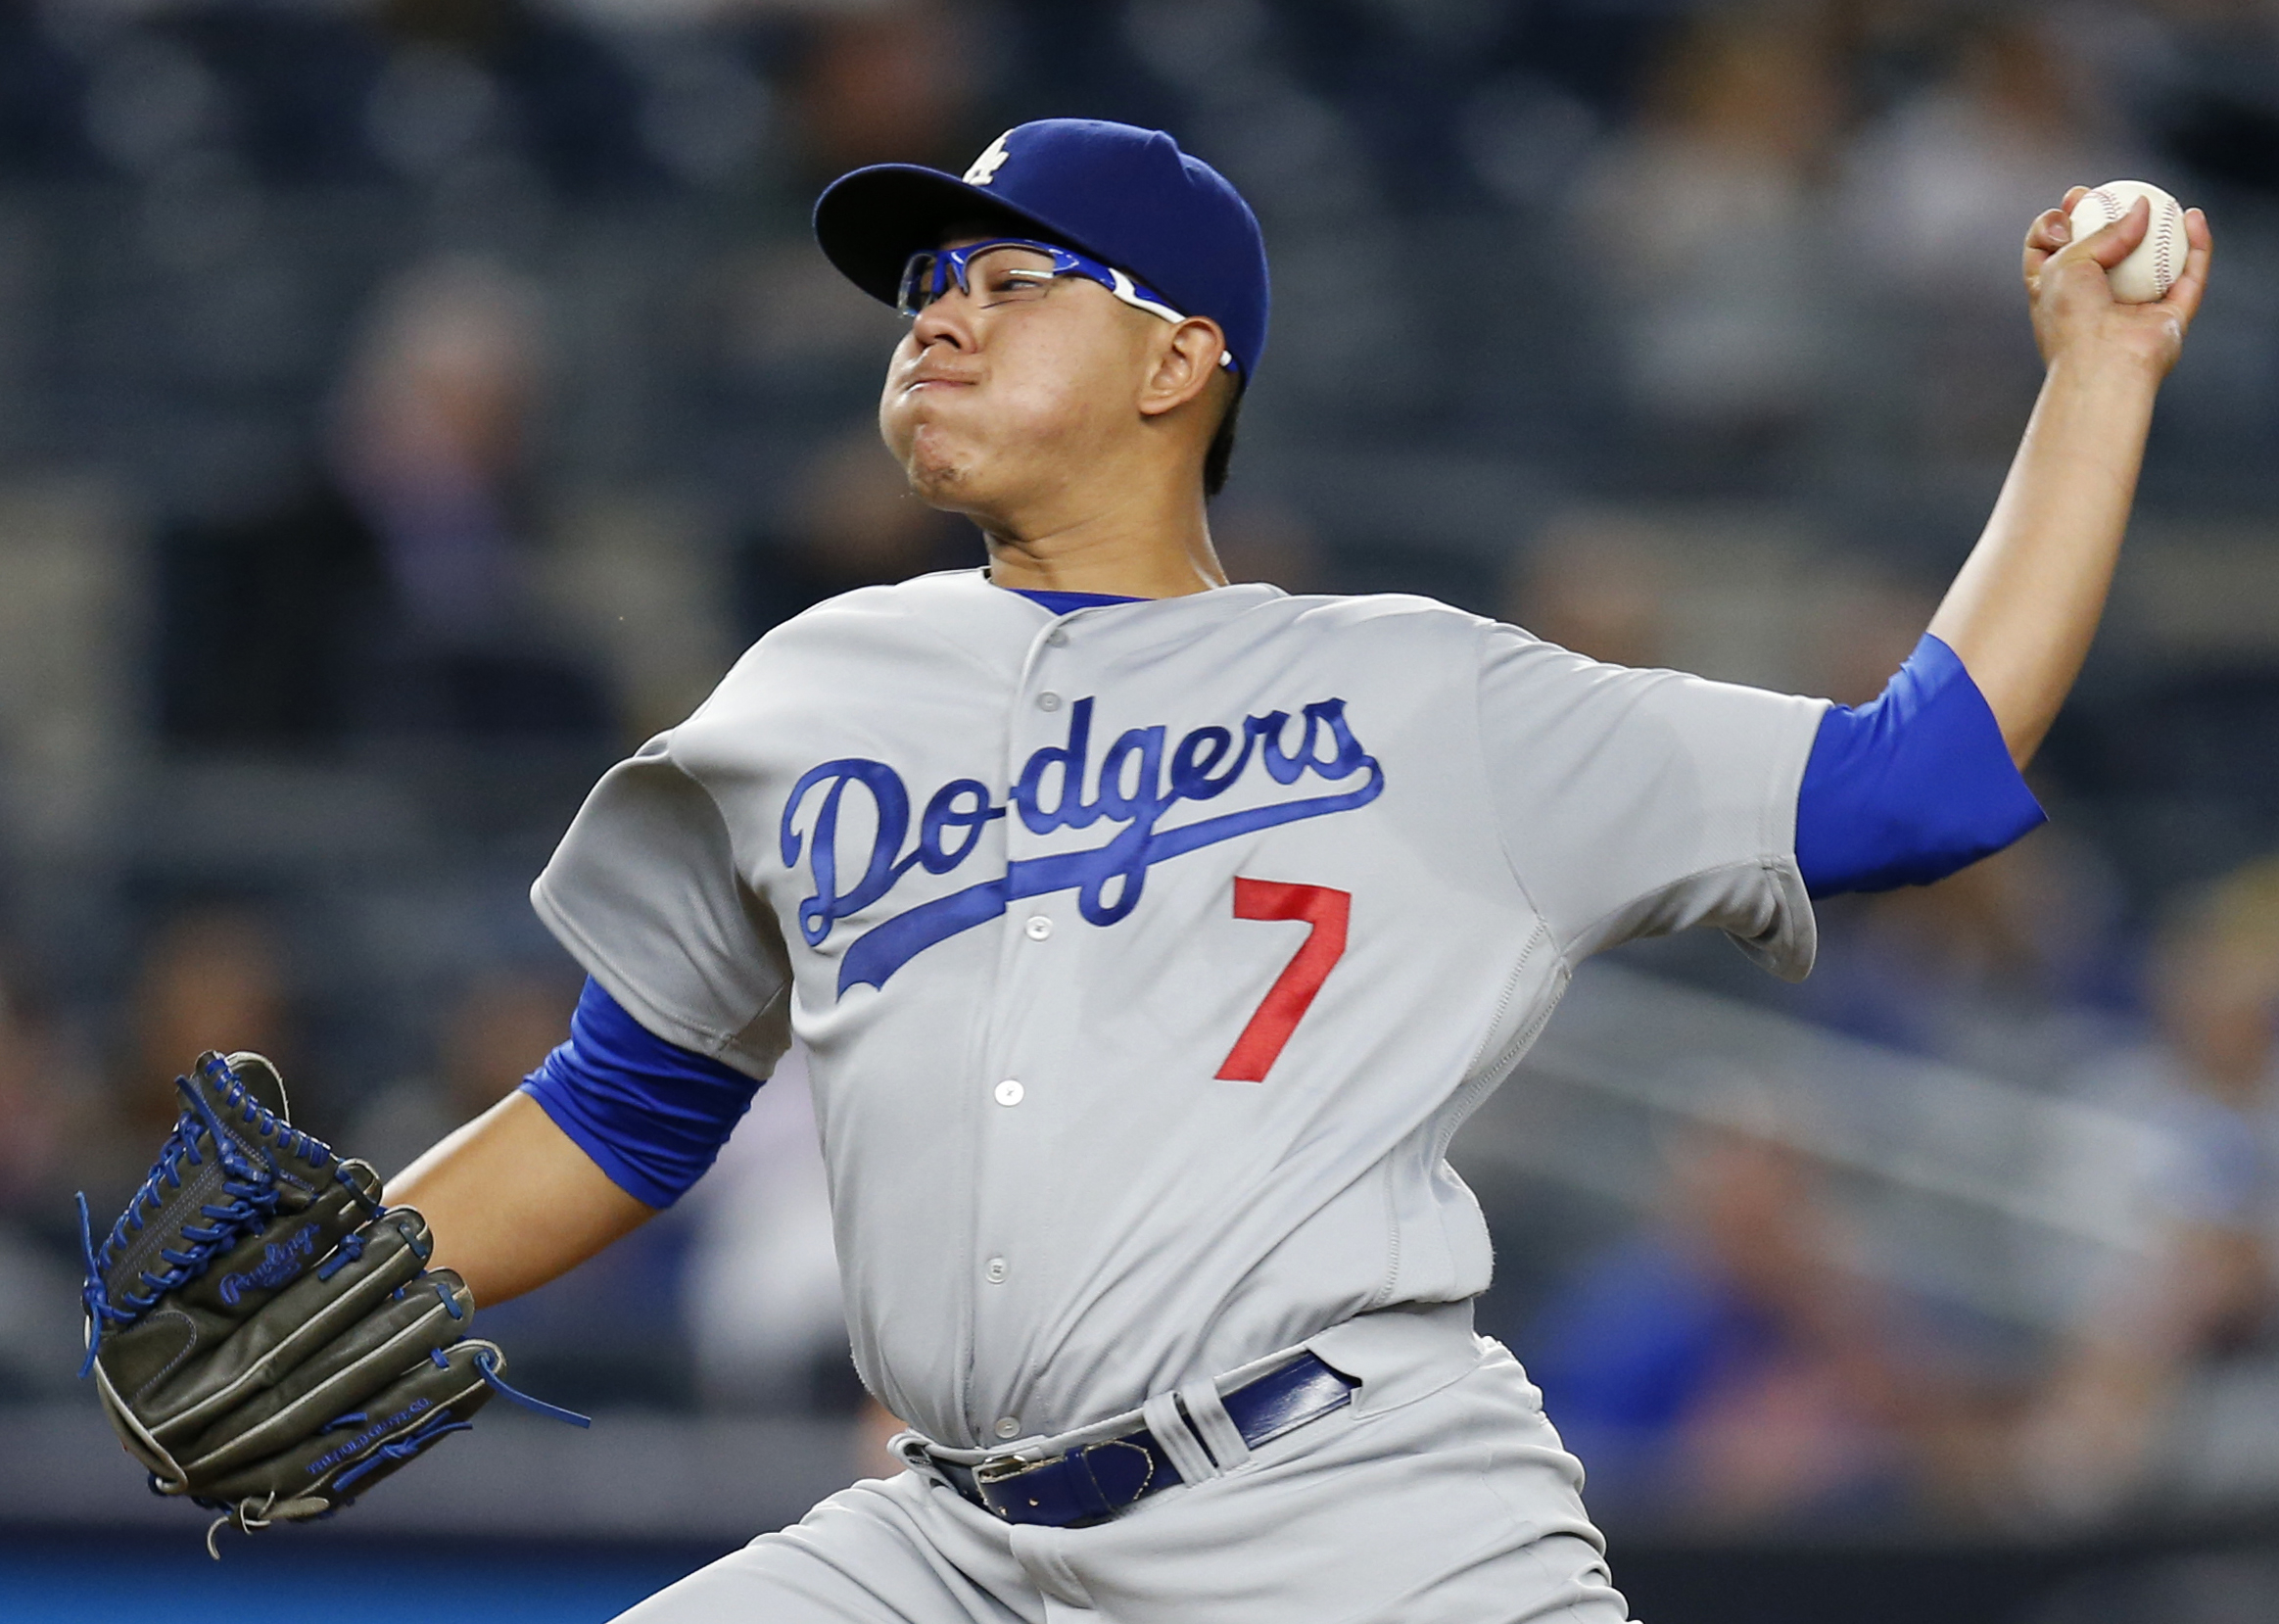 CORRECTS TO NEW YORK YANKEES INSTEAD OF NEW YORK METS IN FIRST SENTENCE FILE - This Sept. 13, 2016 file photo shows Los Angeles Dodgers' starting pitcher Julio Urias delivering during the first inning of a baseball game against the New York Yankees in New